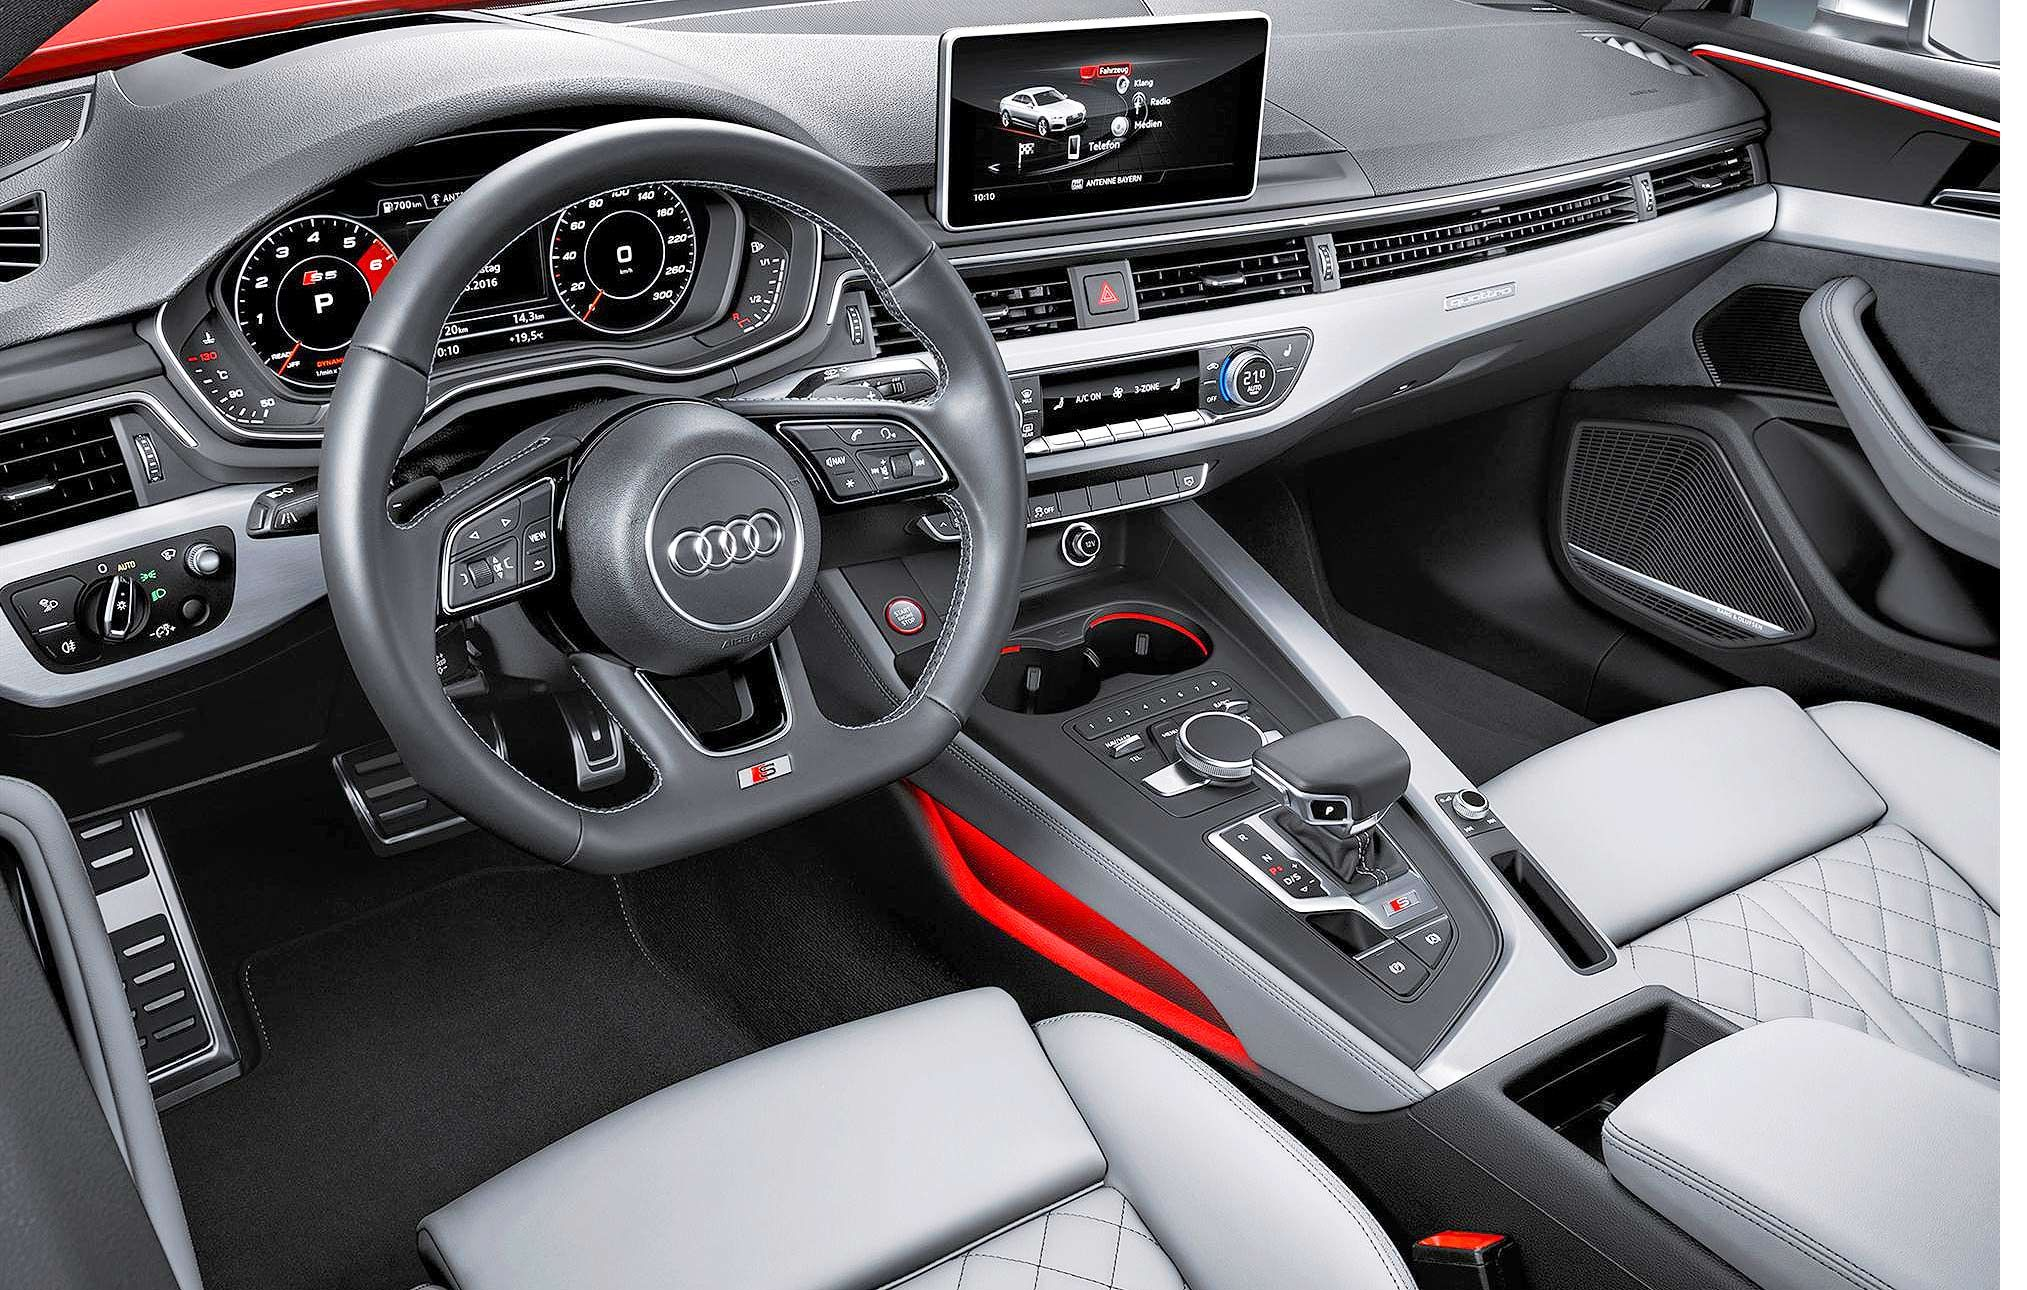 2019 Audi Rs5 Features Interior A Performance Audi A5 Interior Audi S5 Audi A5 Coupe